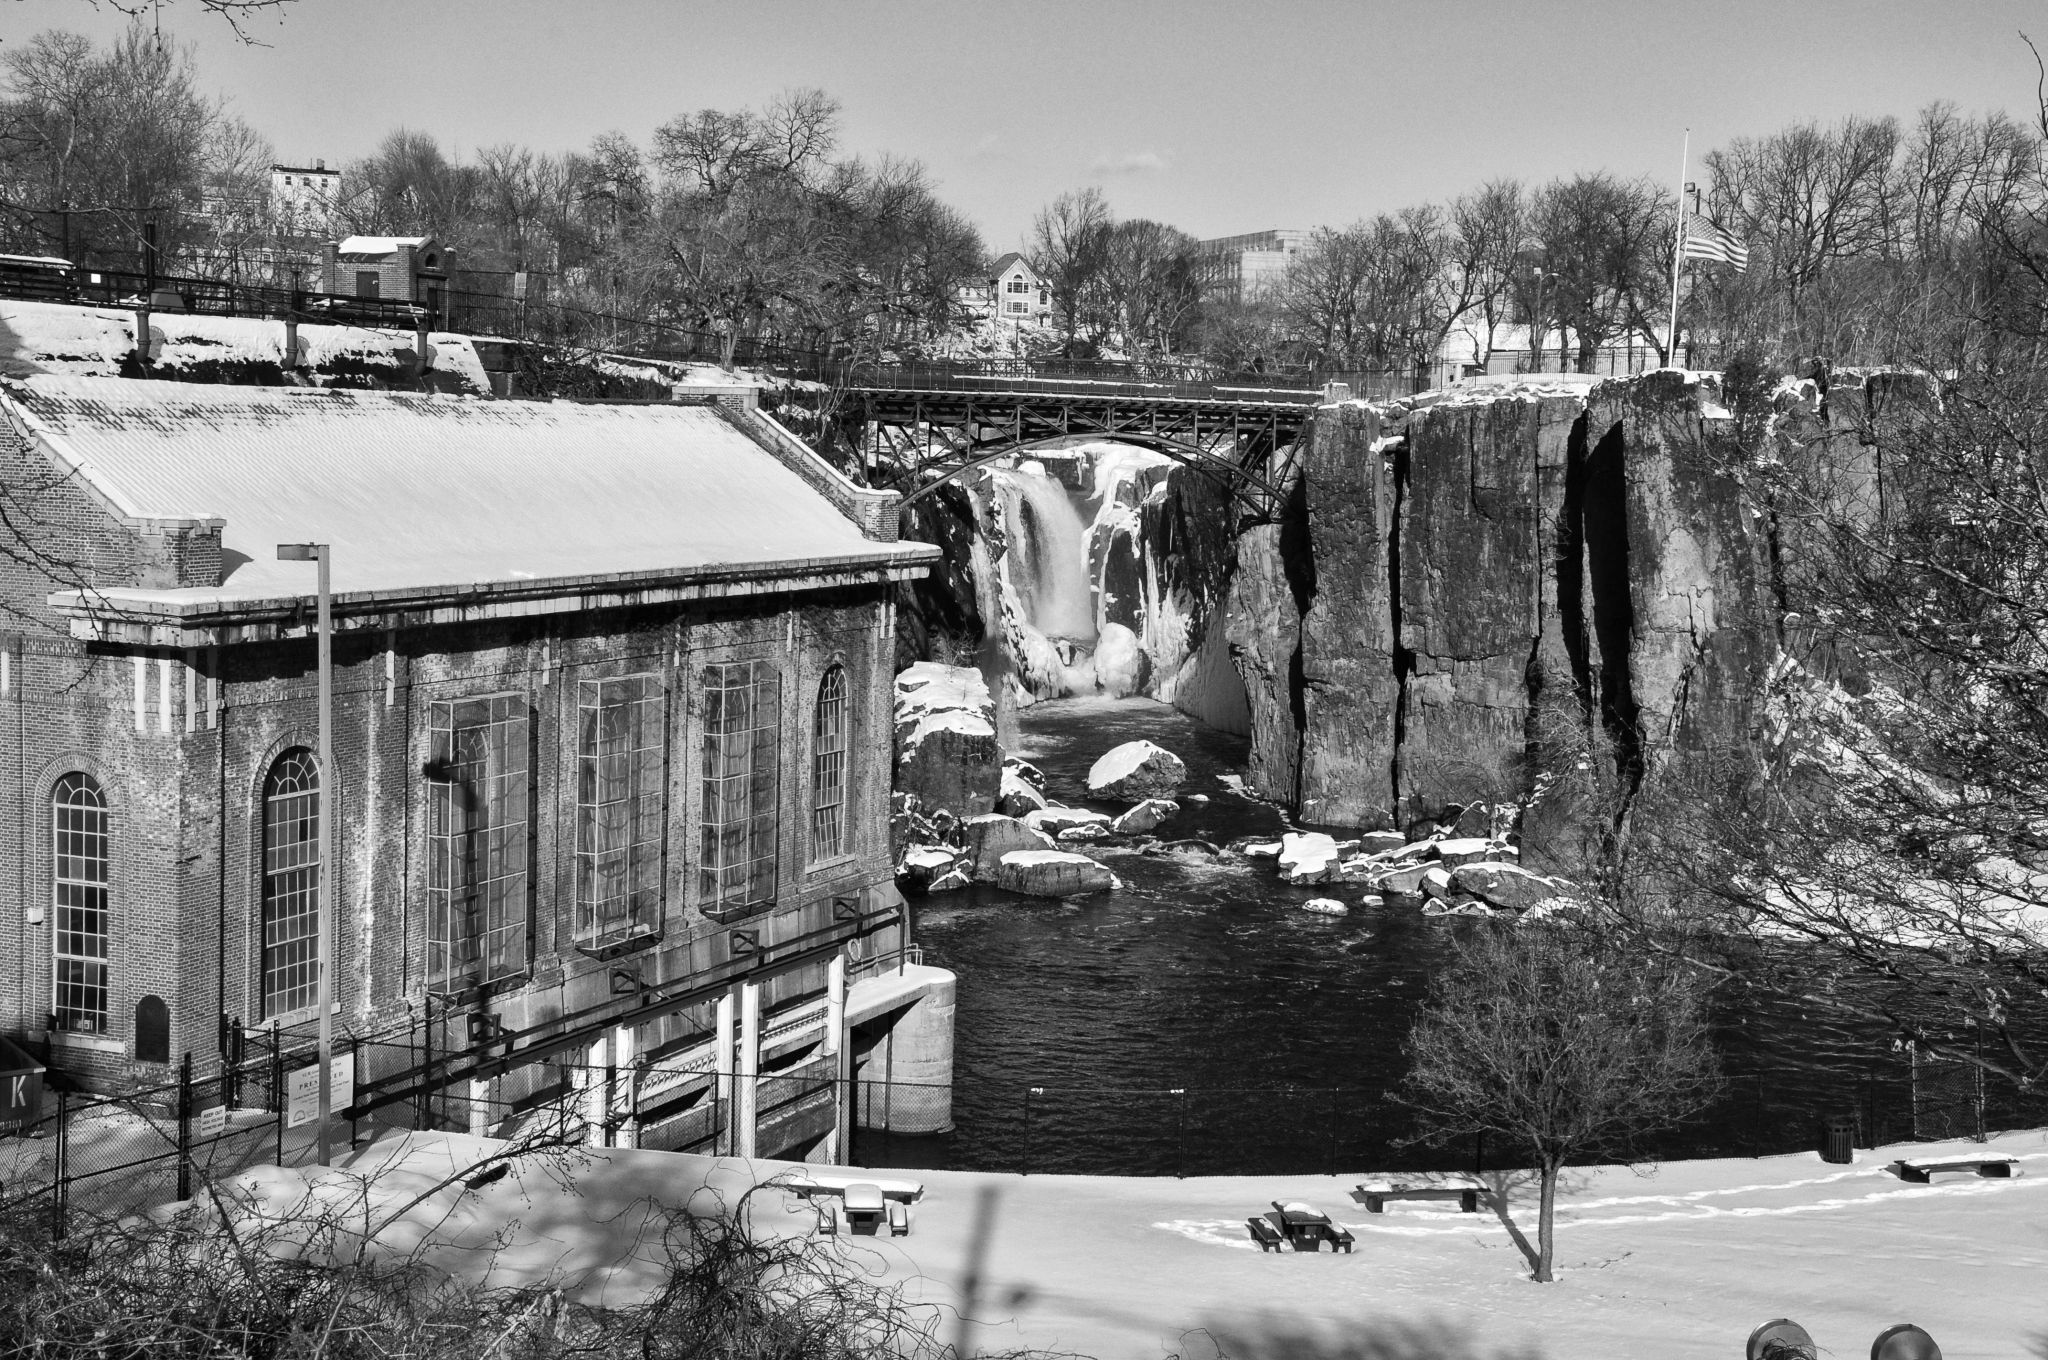 Great Falls in New Jersey, USA